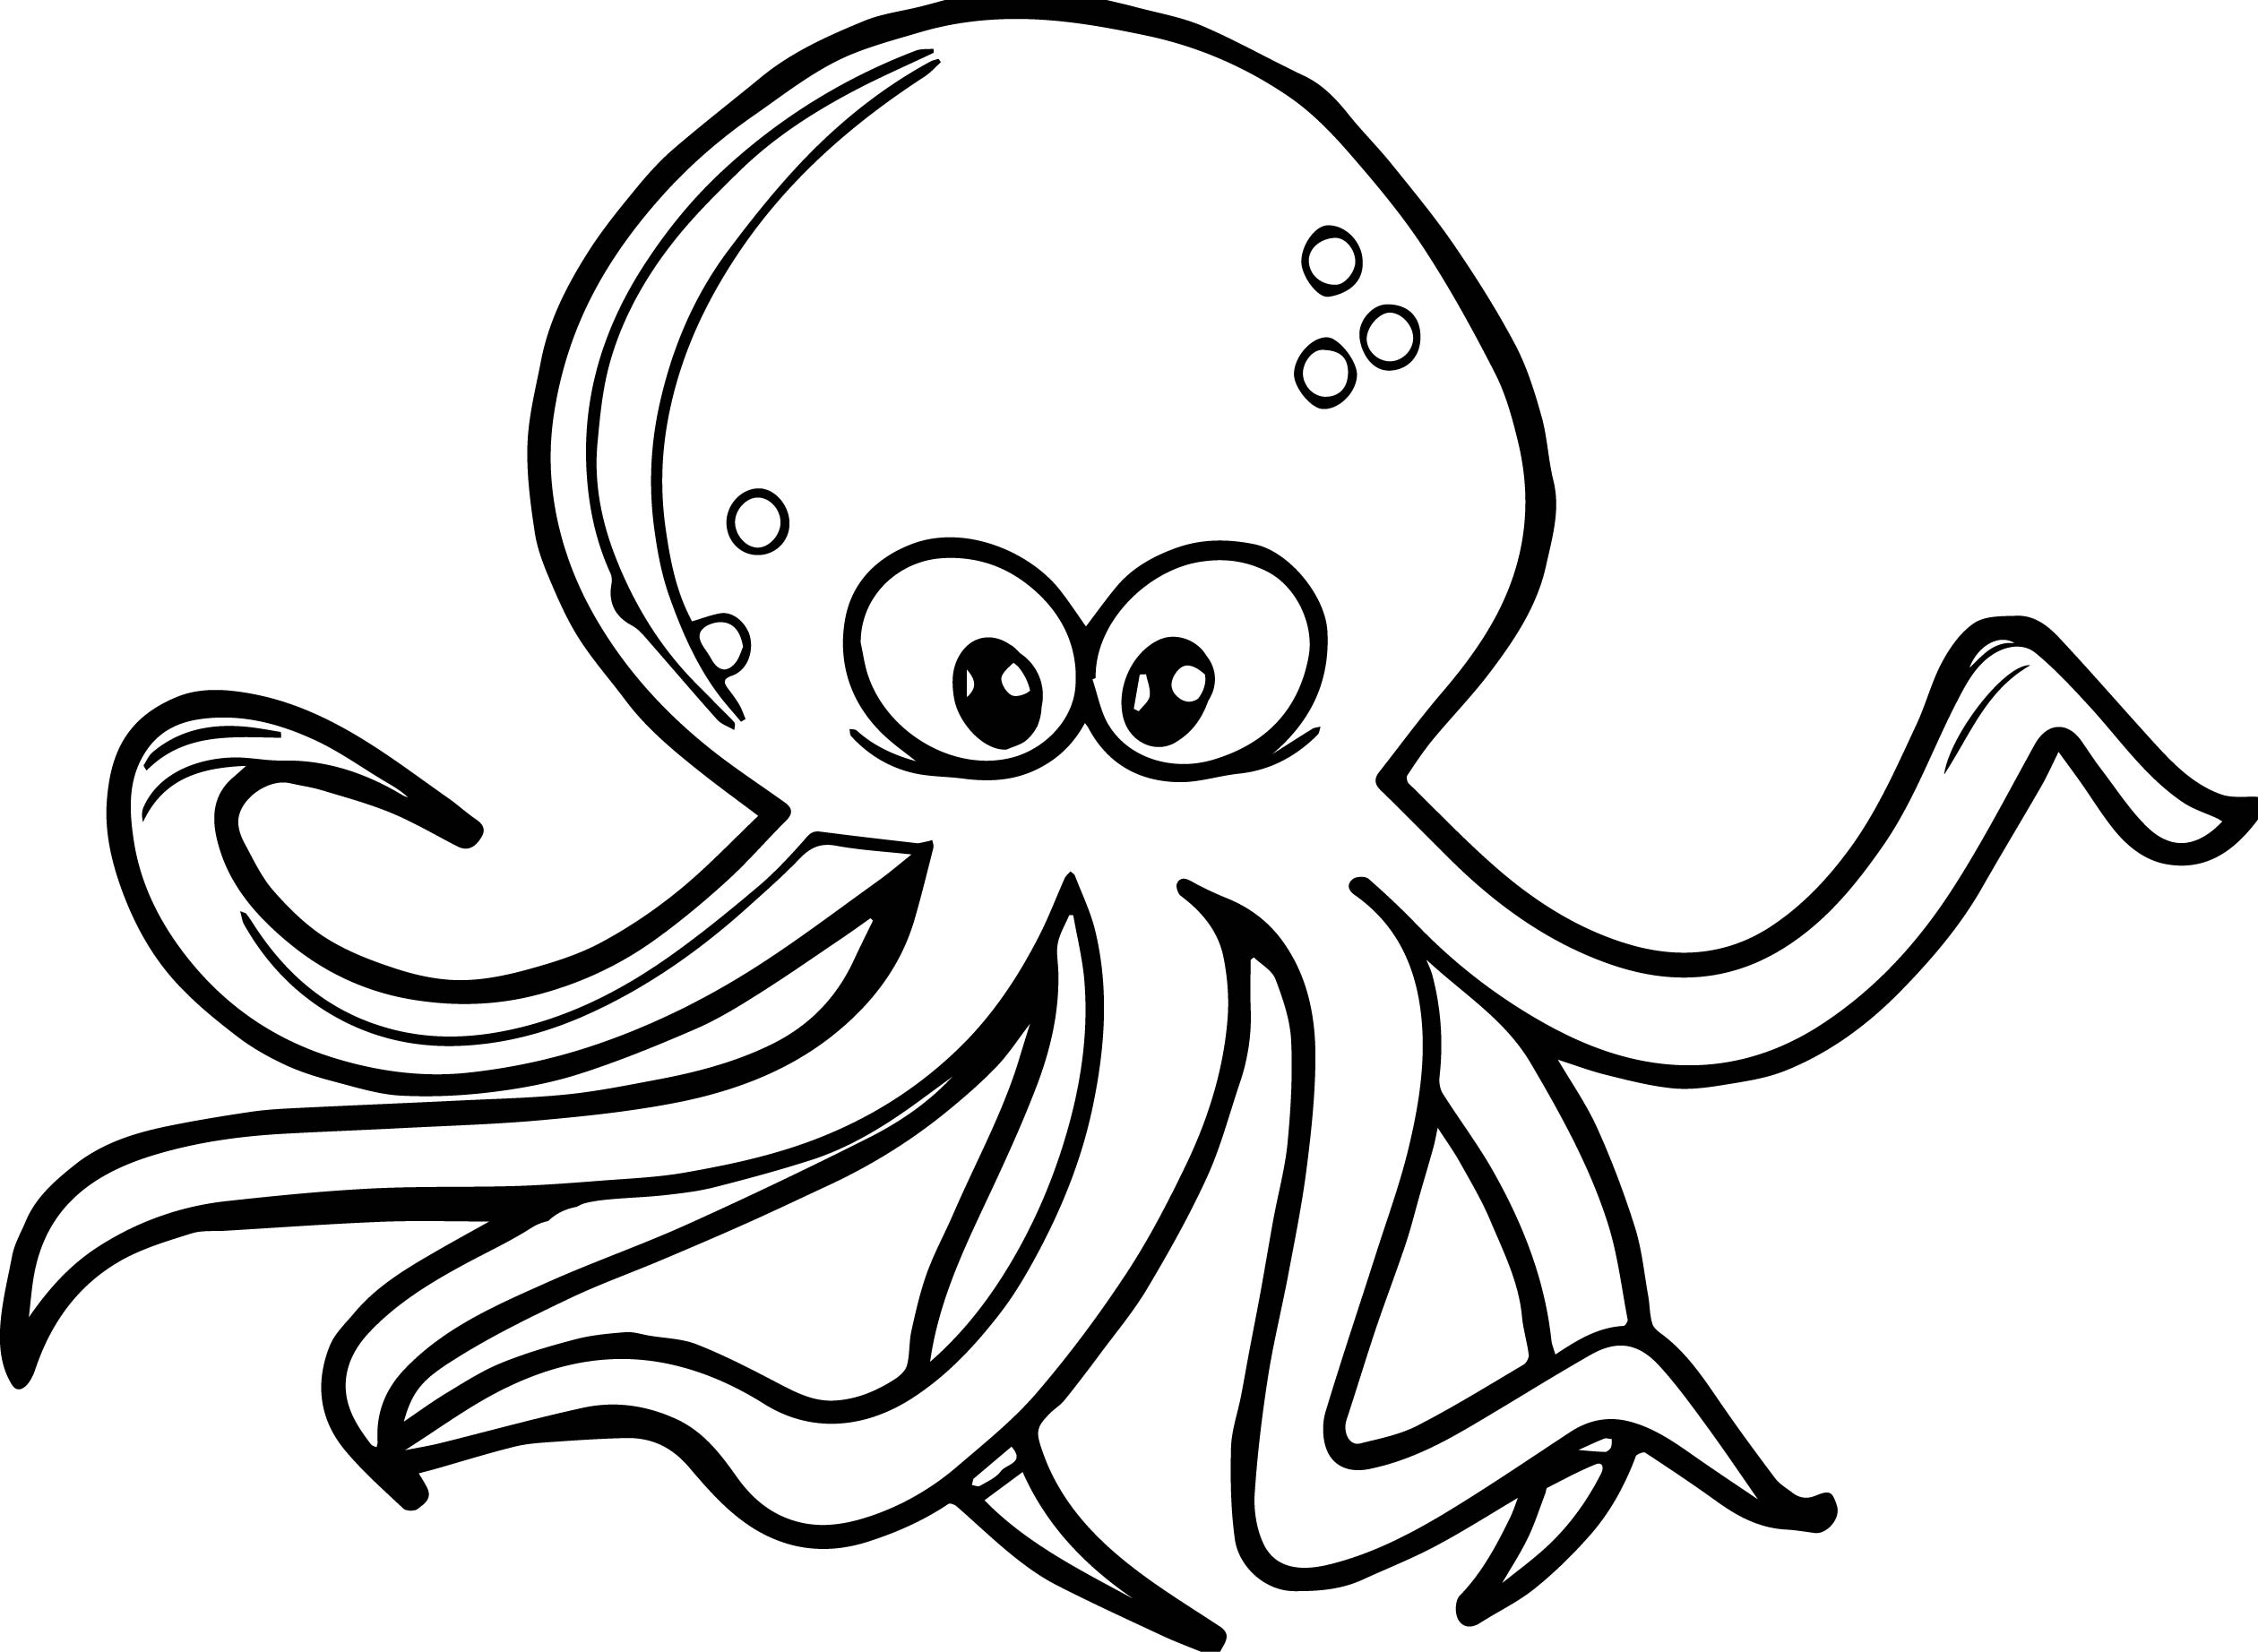 octopus coloring picture octopus coloring pages getcoloringpagescom picture coloring octopus